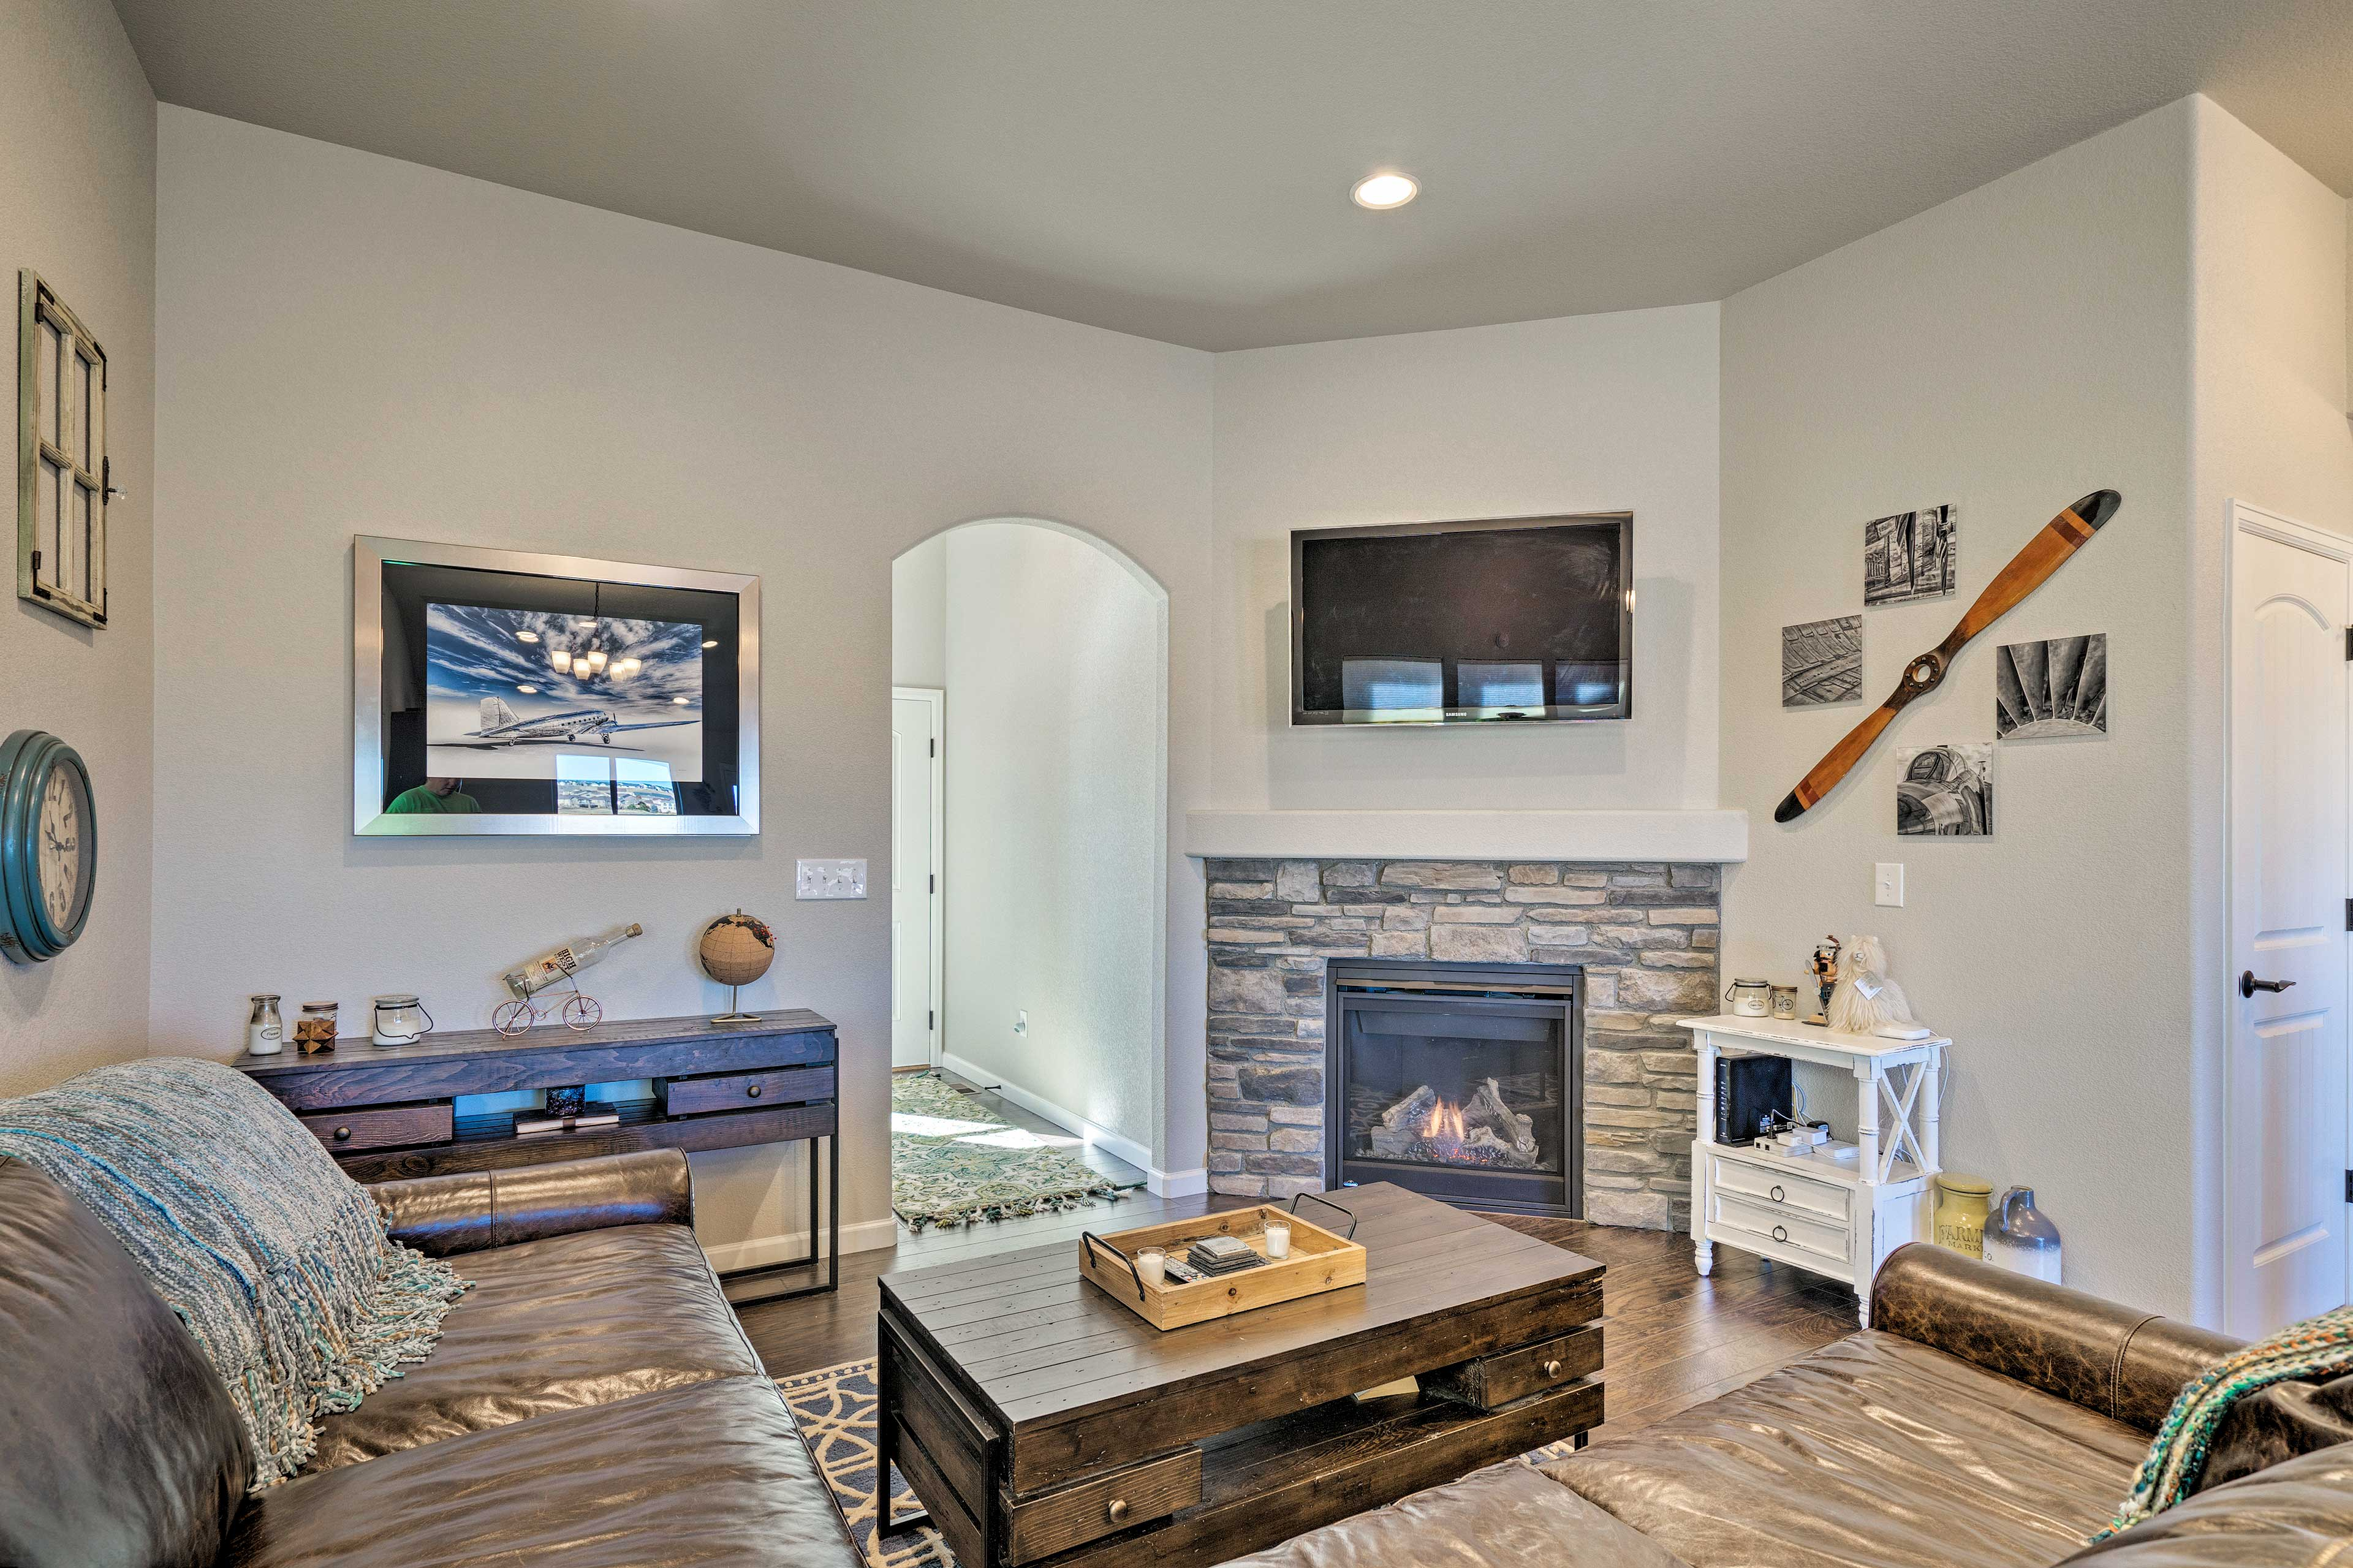 Sink into the sectional sofa while a movie plays and the fireplace flickers!